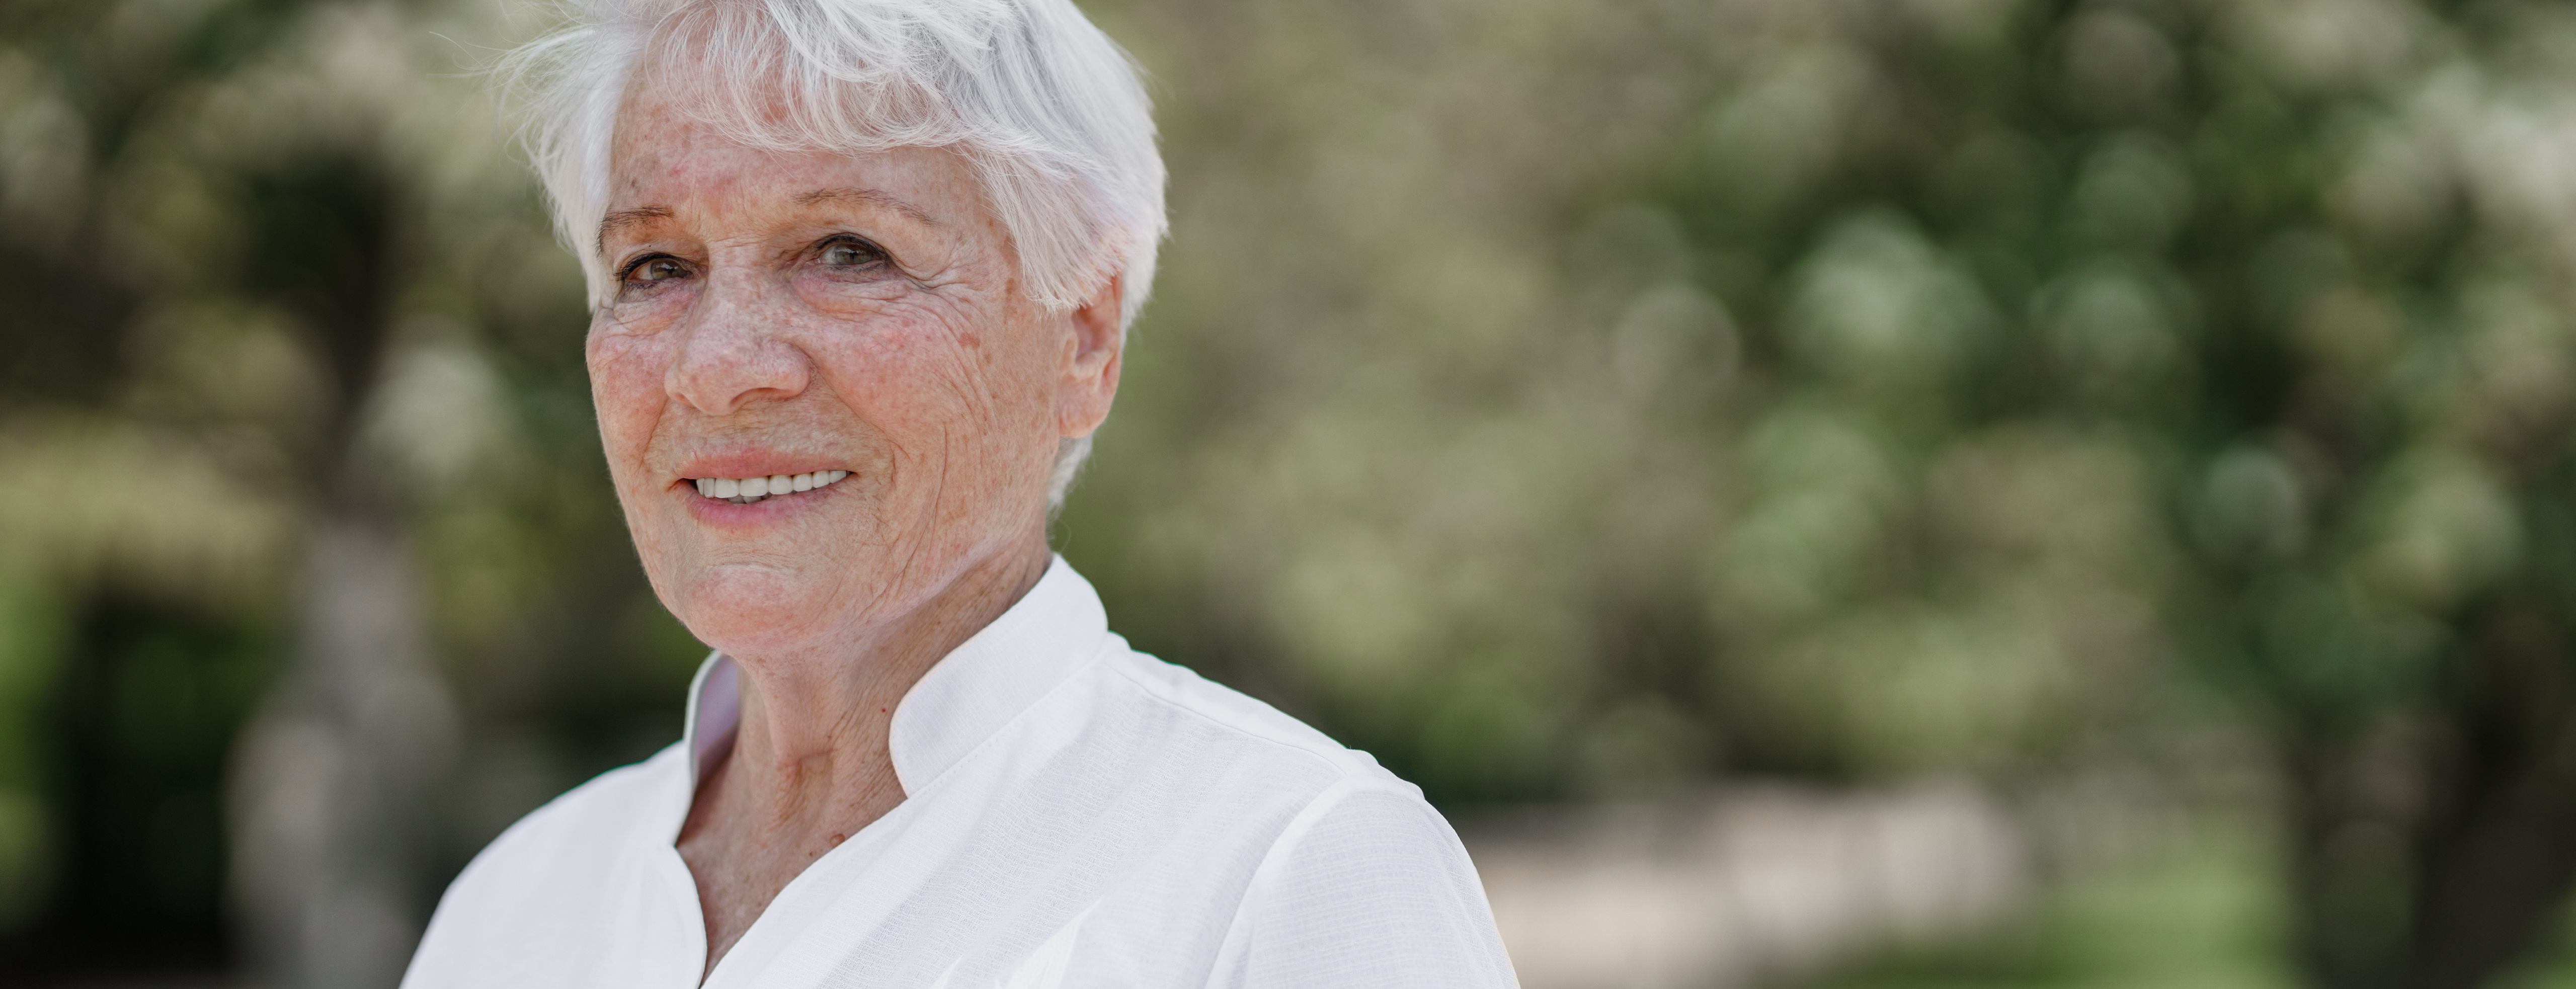 Is senior living right for you?